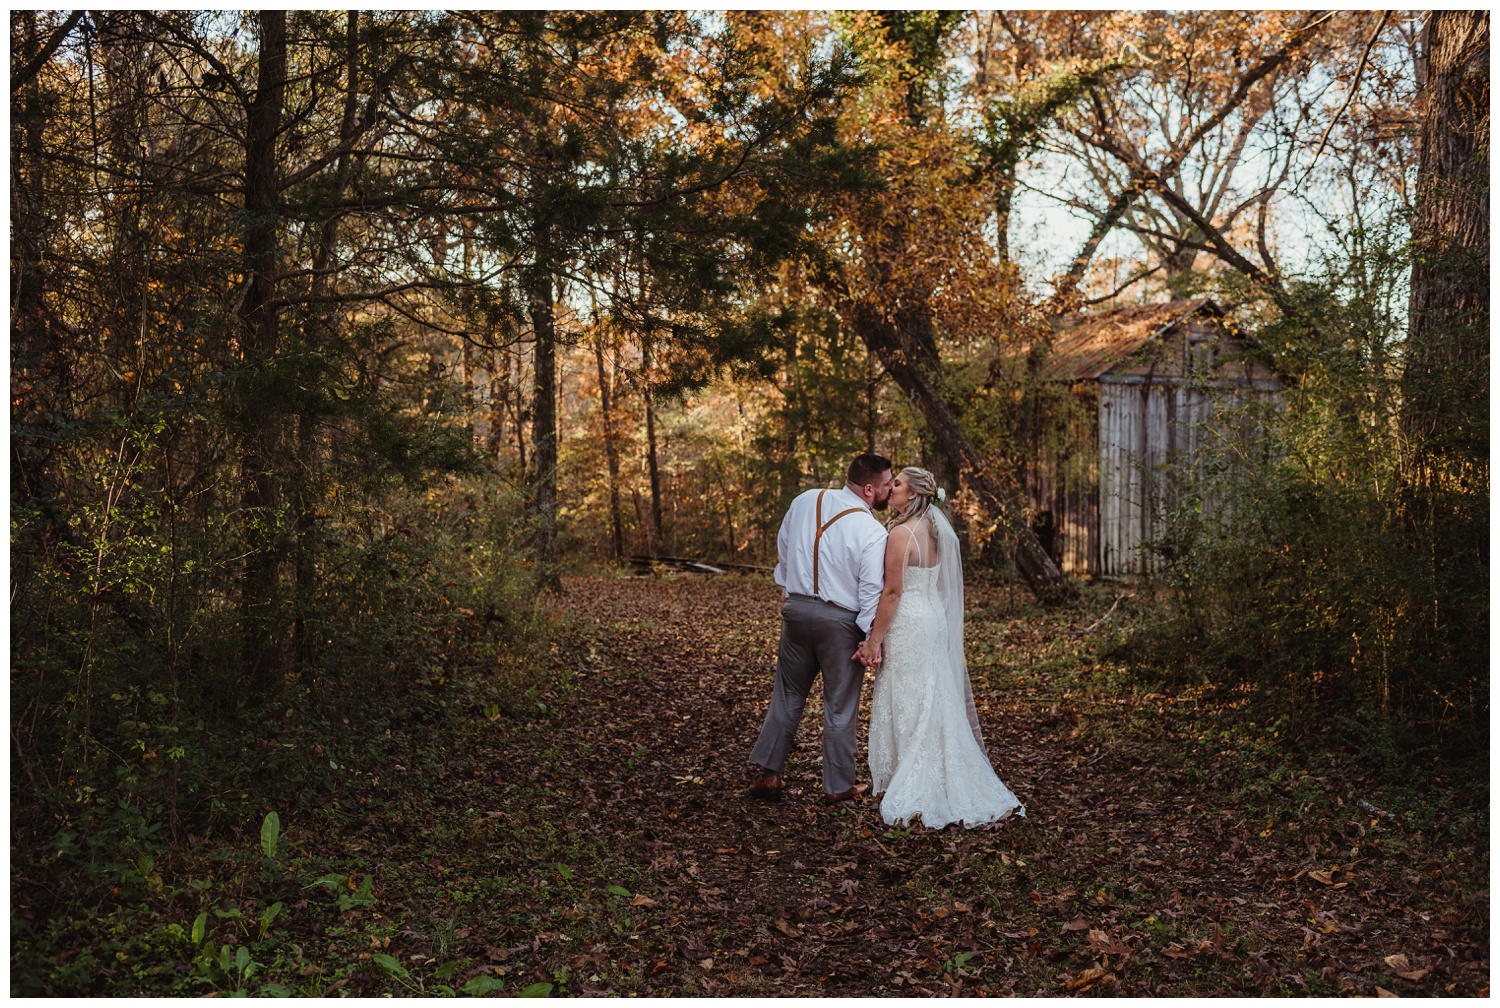 Kayla and Brian take a moment to kiss in the woods after their wedding ceremony at The Warren Estate, images by Rose Trail Images of Rolesville, NC.